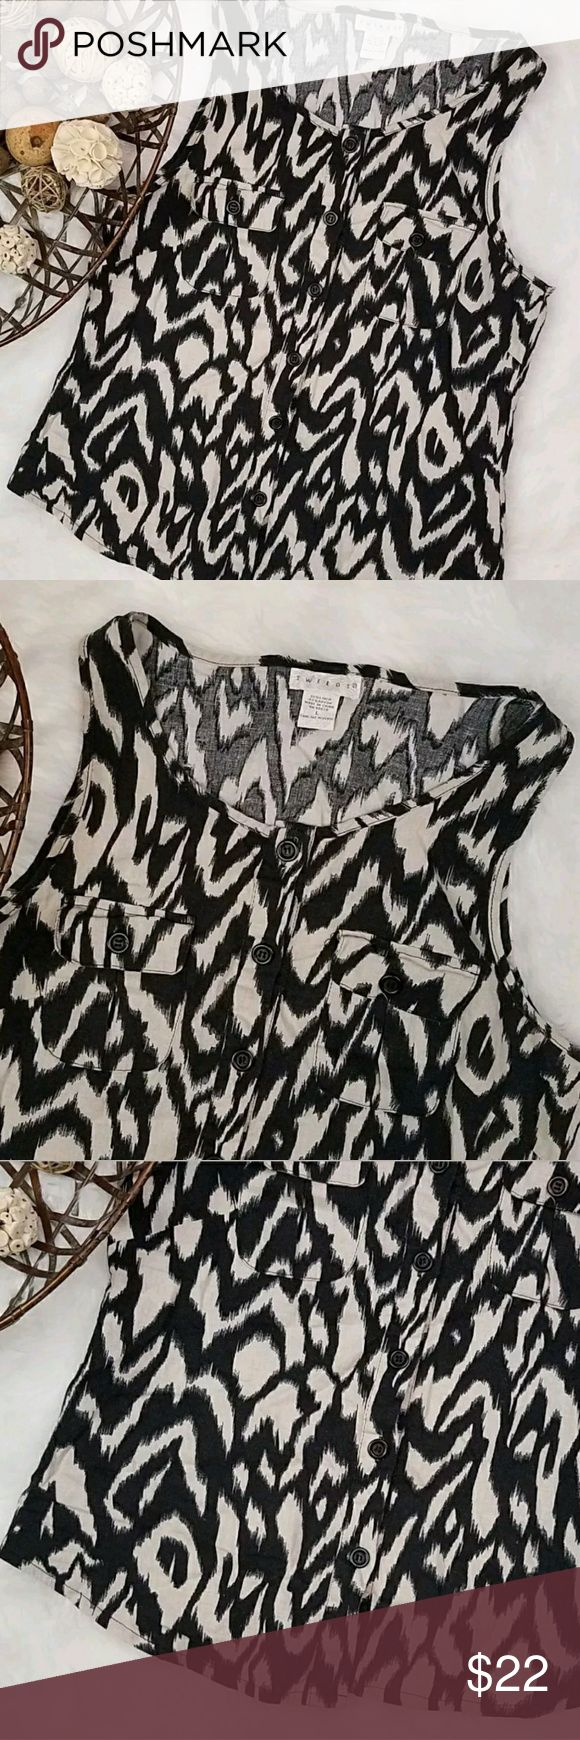 Tweeds animal print sleeveless button front top Tweeds sleeveless, button front, animal print women's top. In good condition. Material: 55% linen, 45% rayon RN: 88820 Made in China  SIZE: Large Measurements: Armpit to armpit: 19 inches Length: 24 inches Tweeds Tops